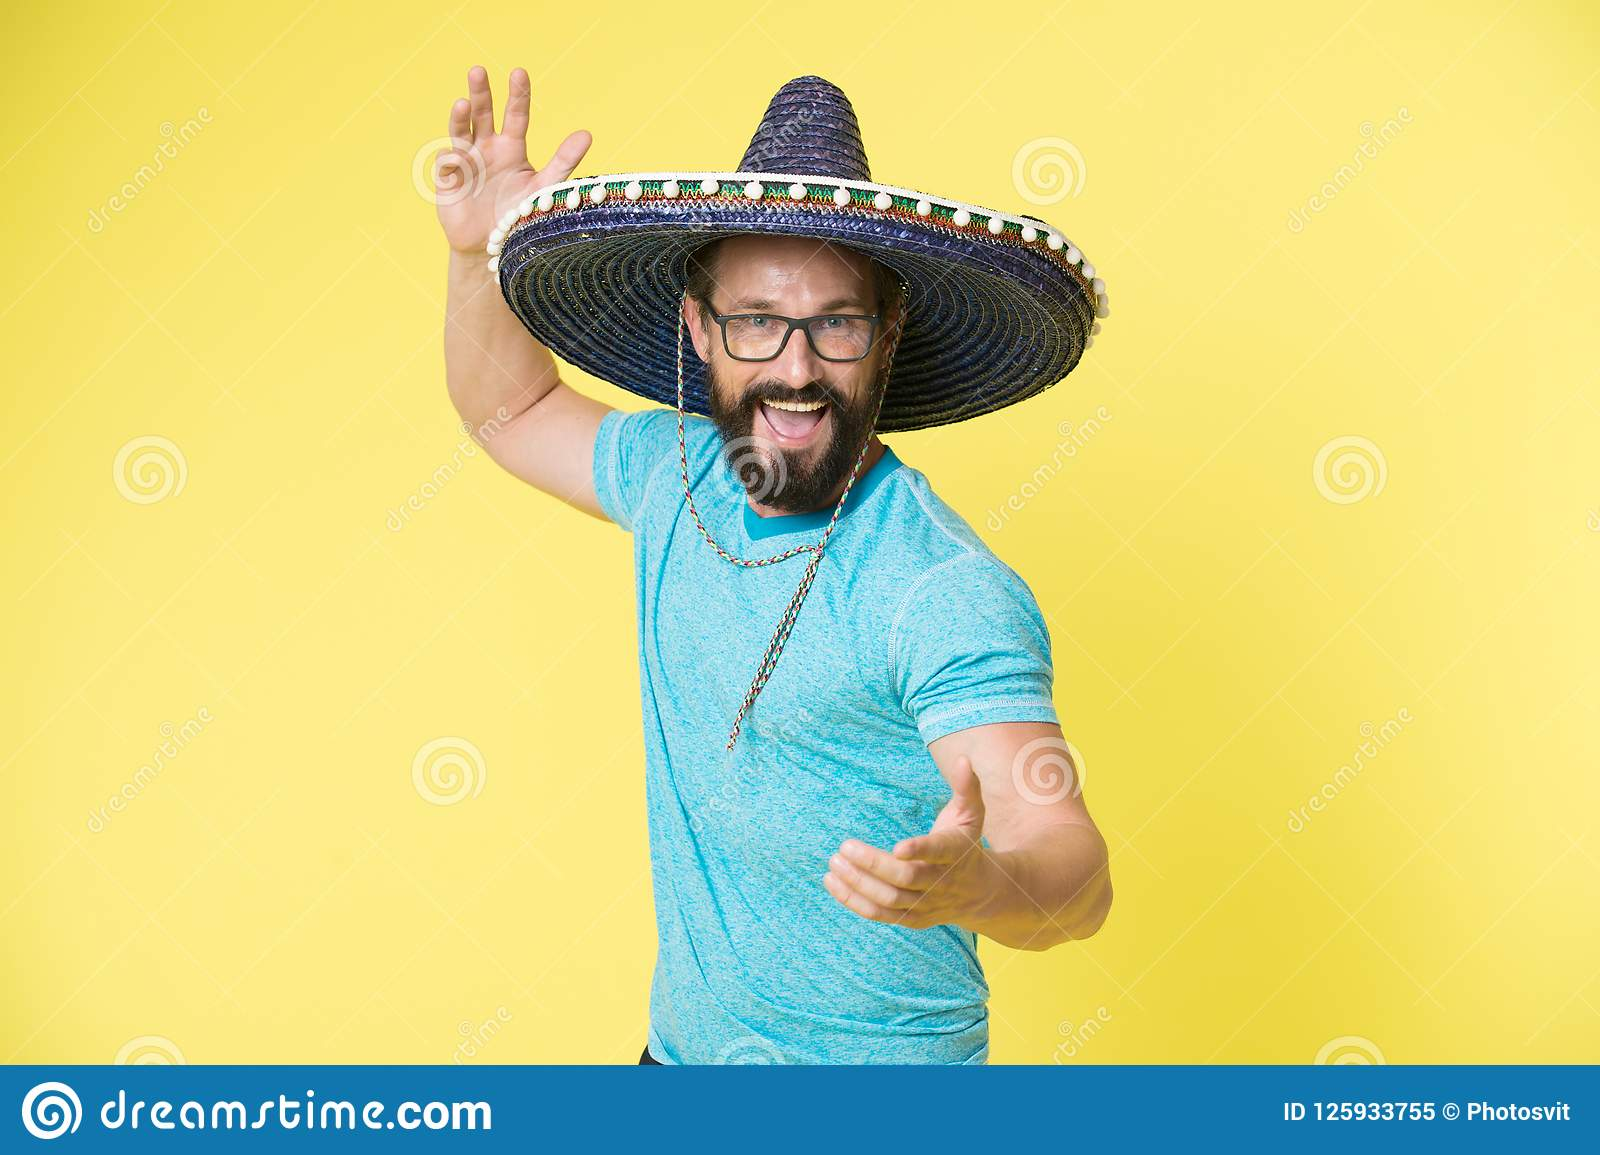 Mexican party concept. Man cheerful happy face in sombrero hat celebrating yellow background. Guy with beard looks